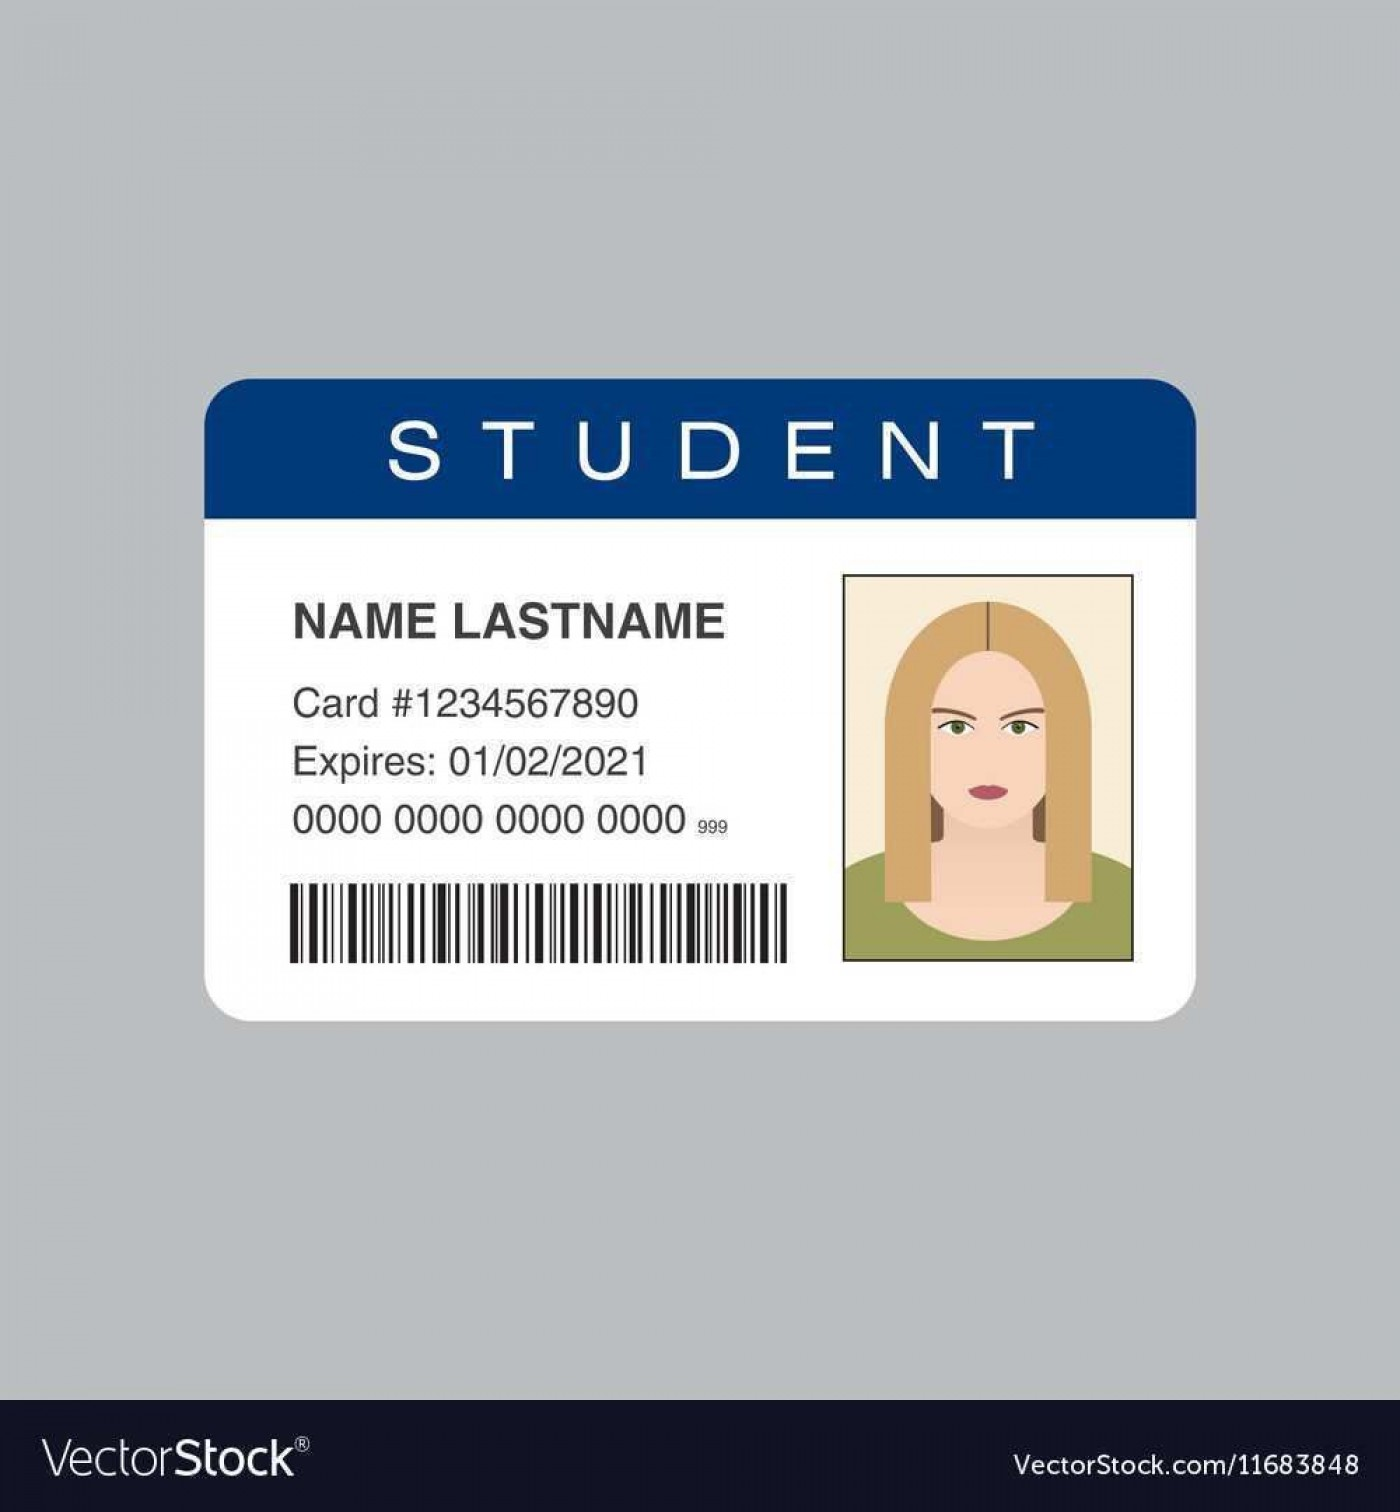 002 Fantastic Student Id Card Template High Resolution  Free Psd Download Word School1400